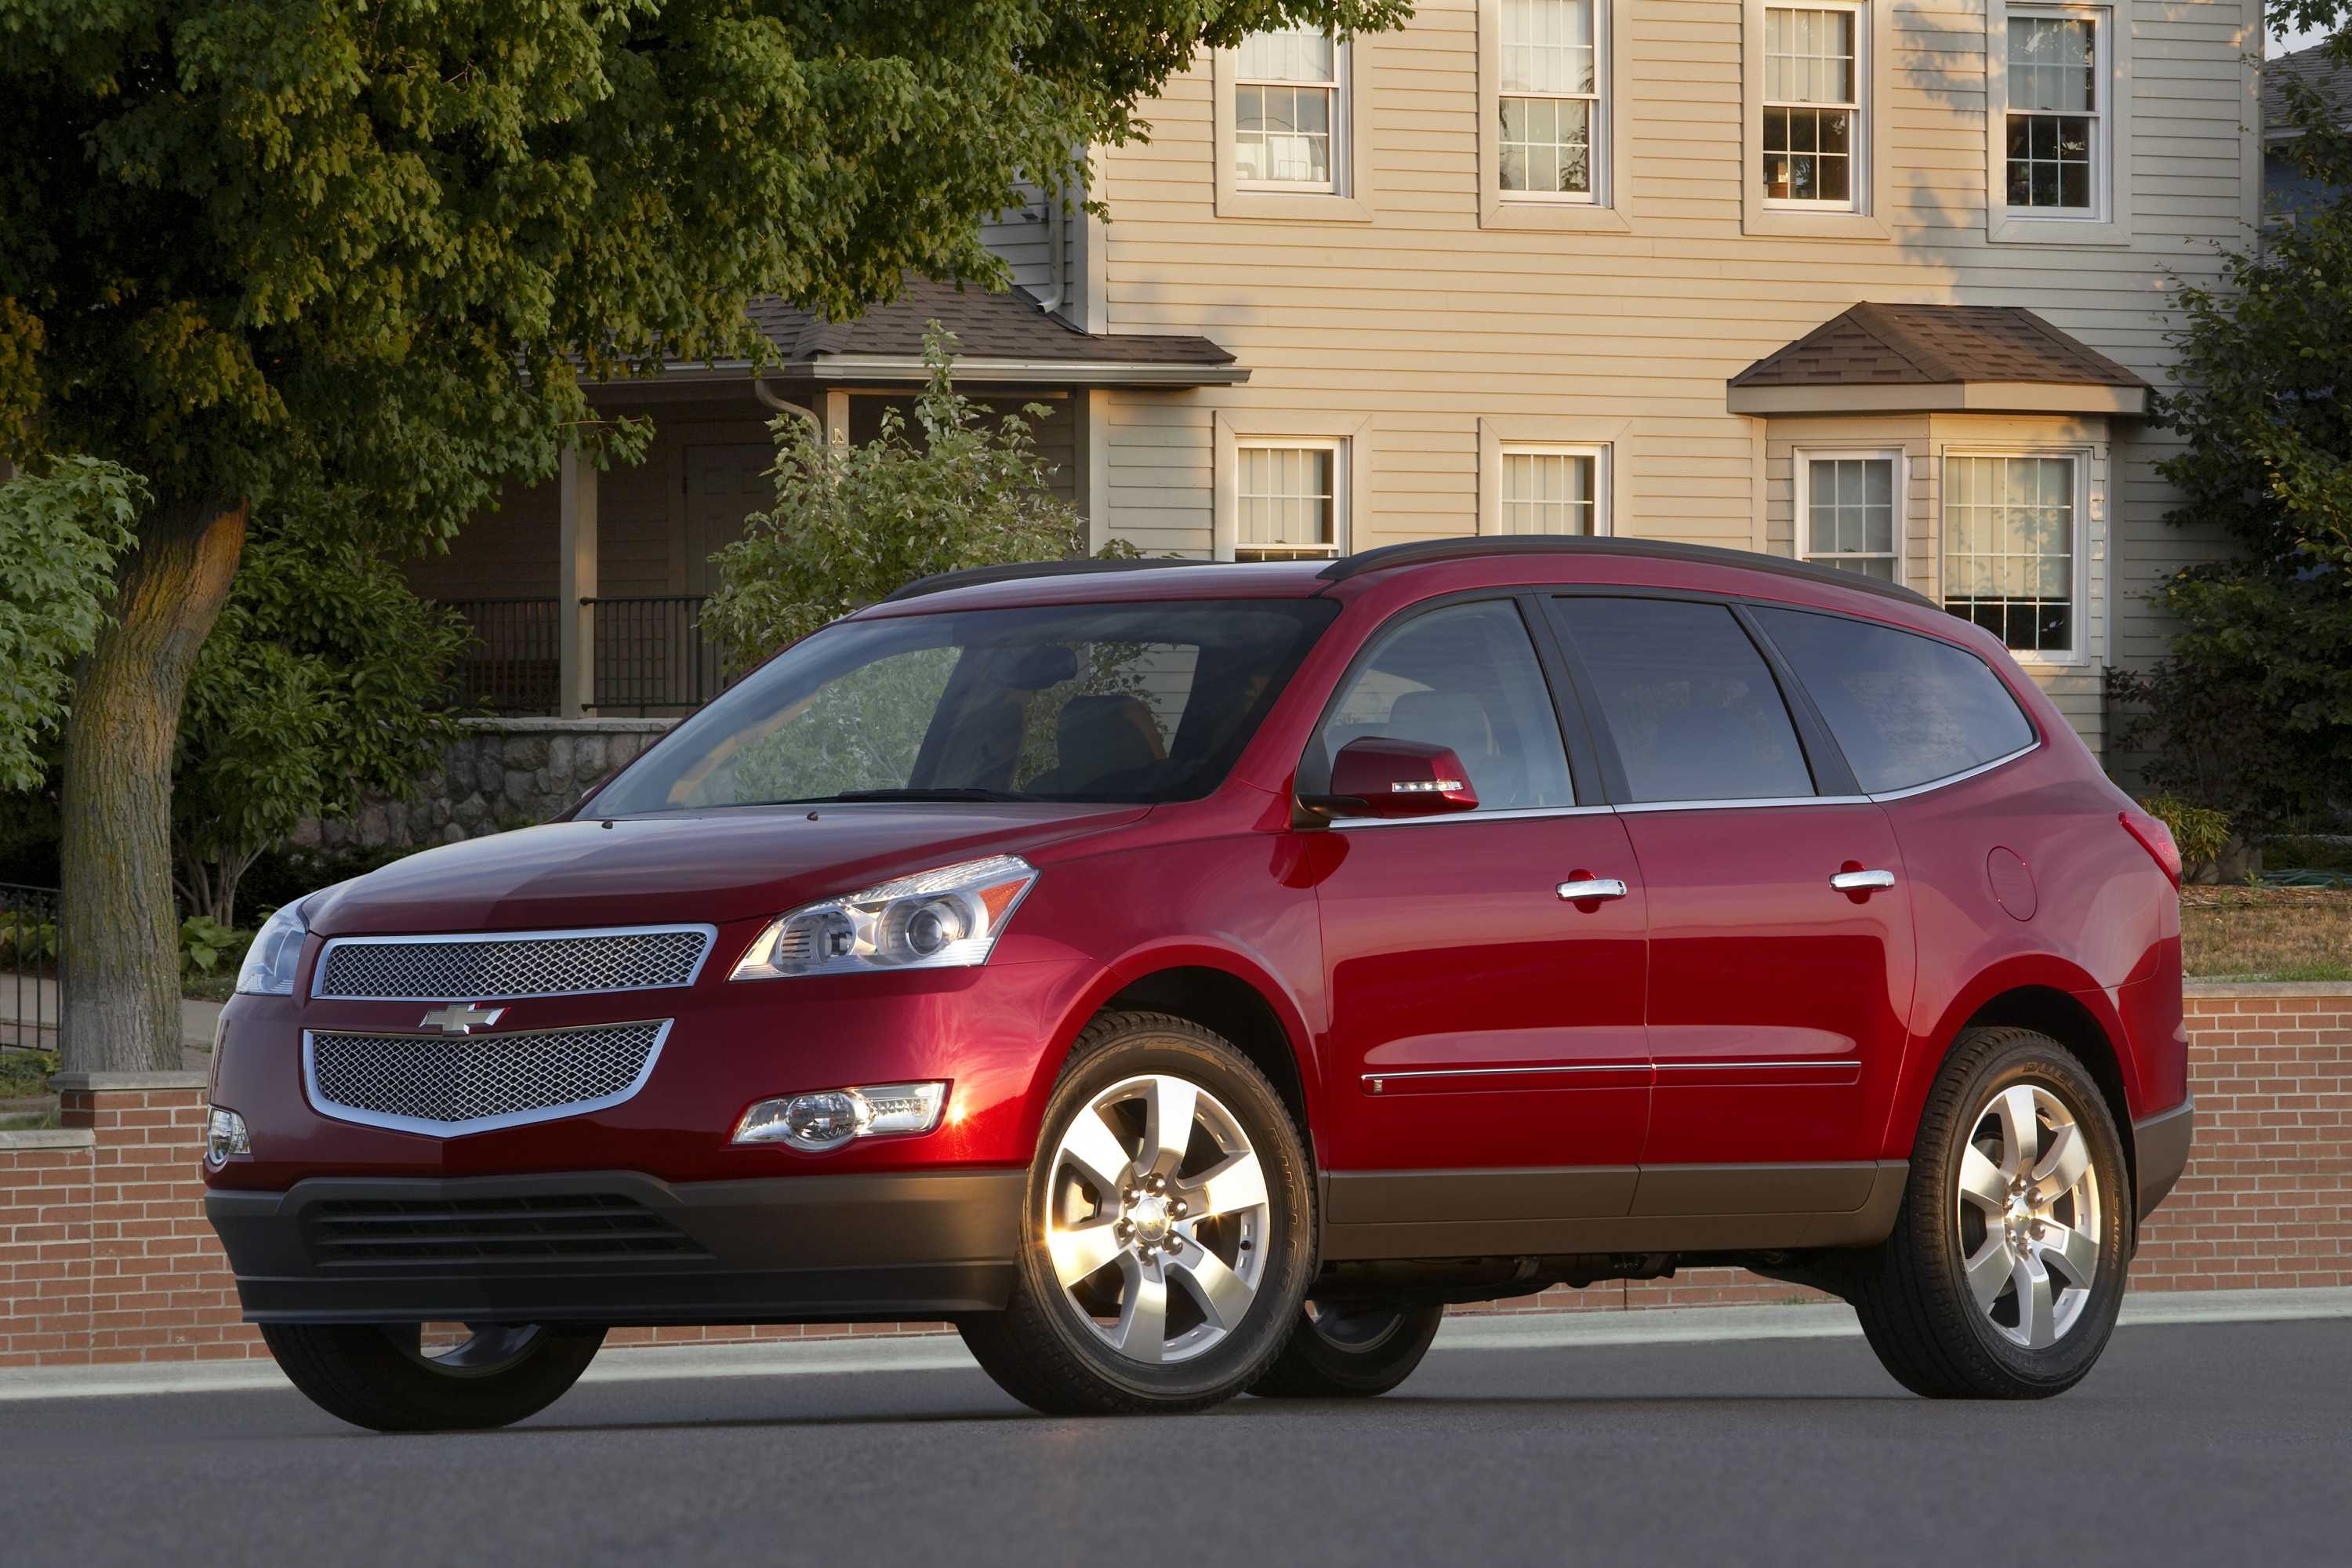 Chevrolet Suburban and Traverse Named Top 10 Family Cars by Kelley ...